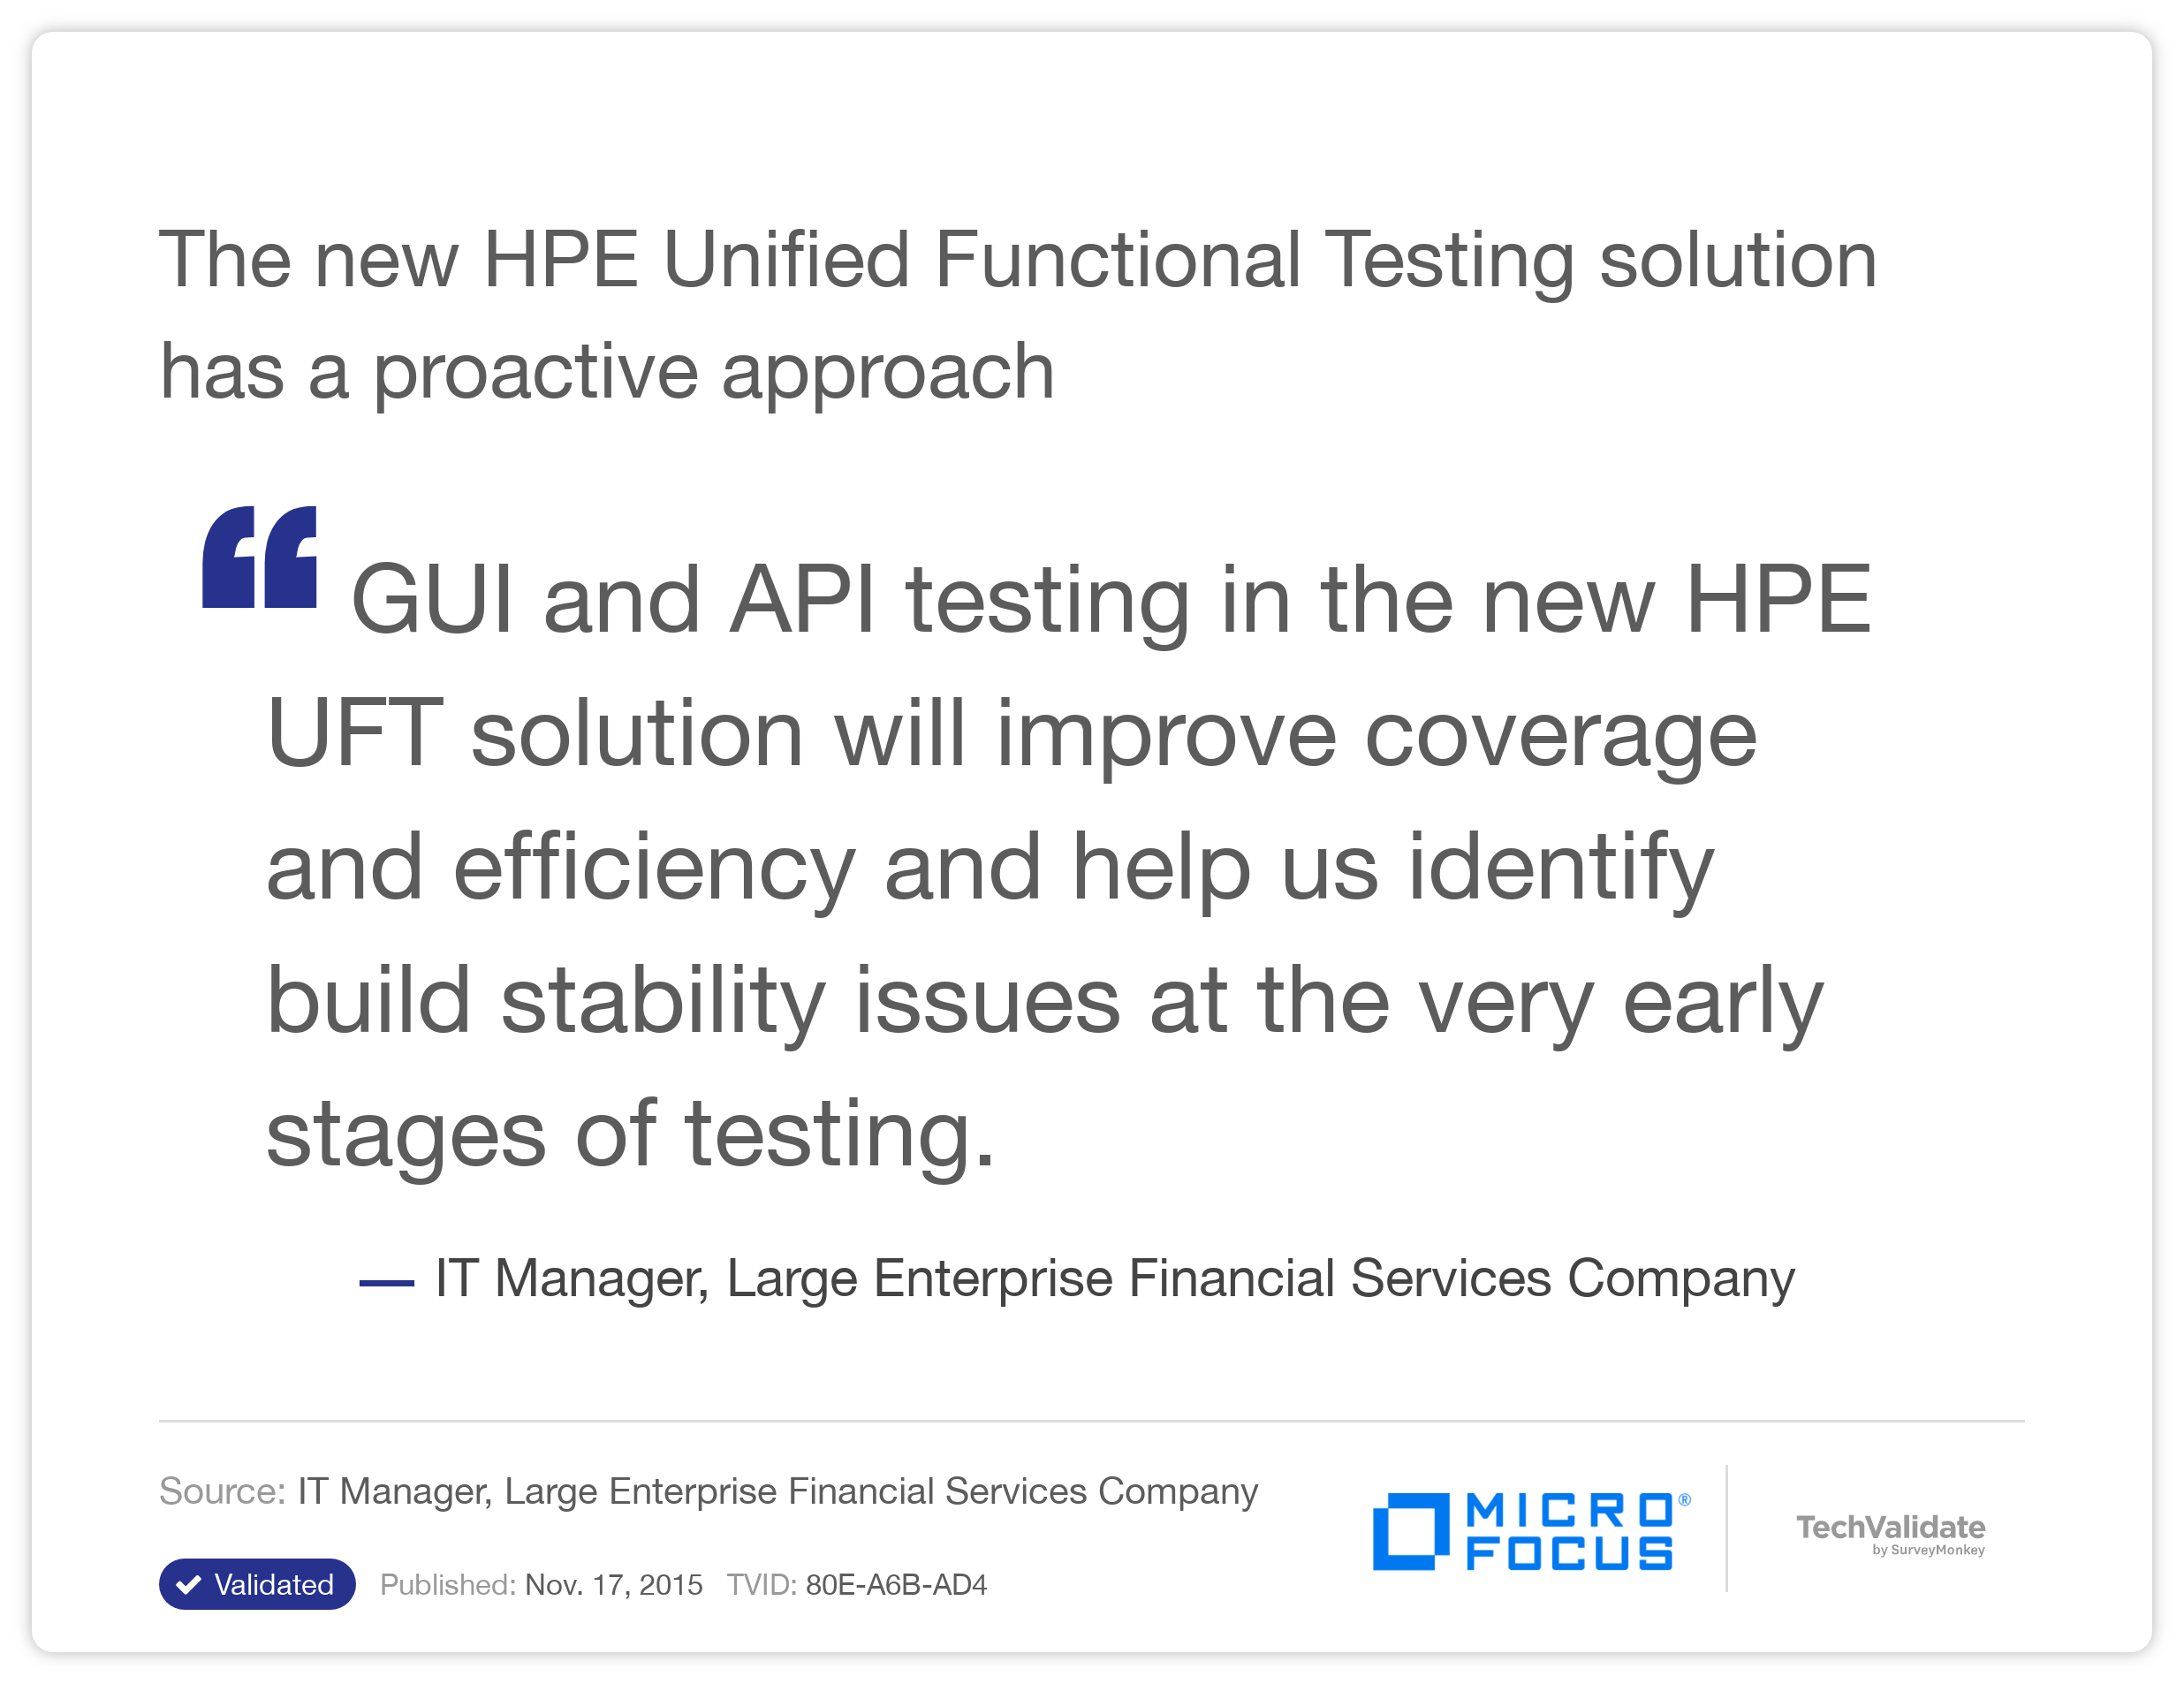 The new HP Unified Functional Testing solution has a proactive approach